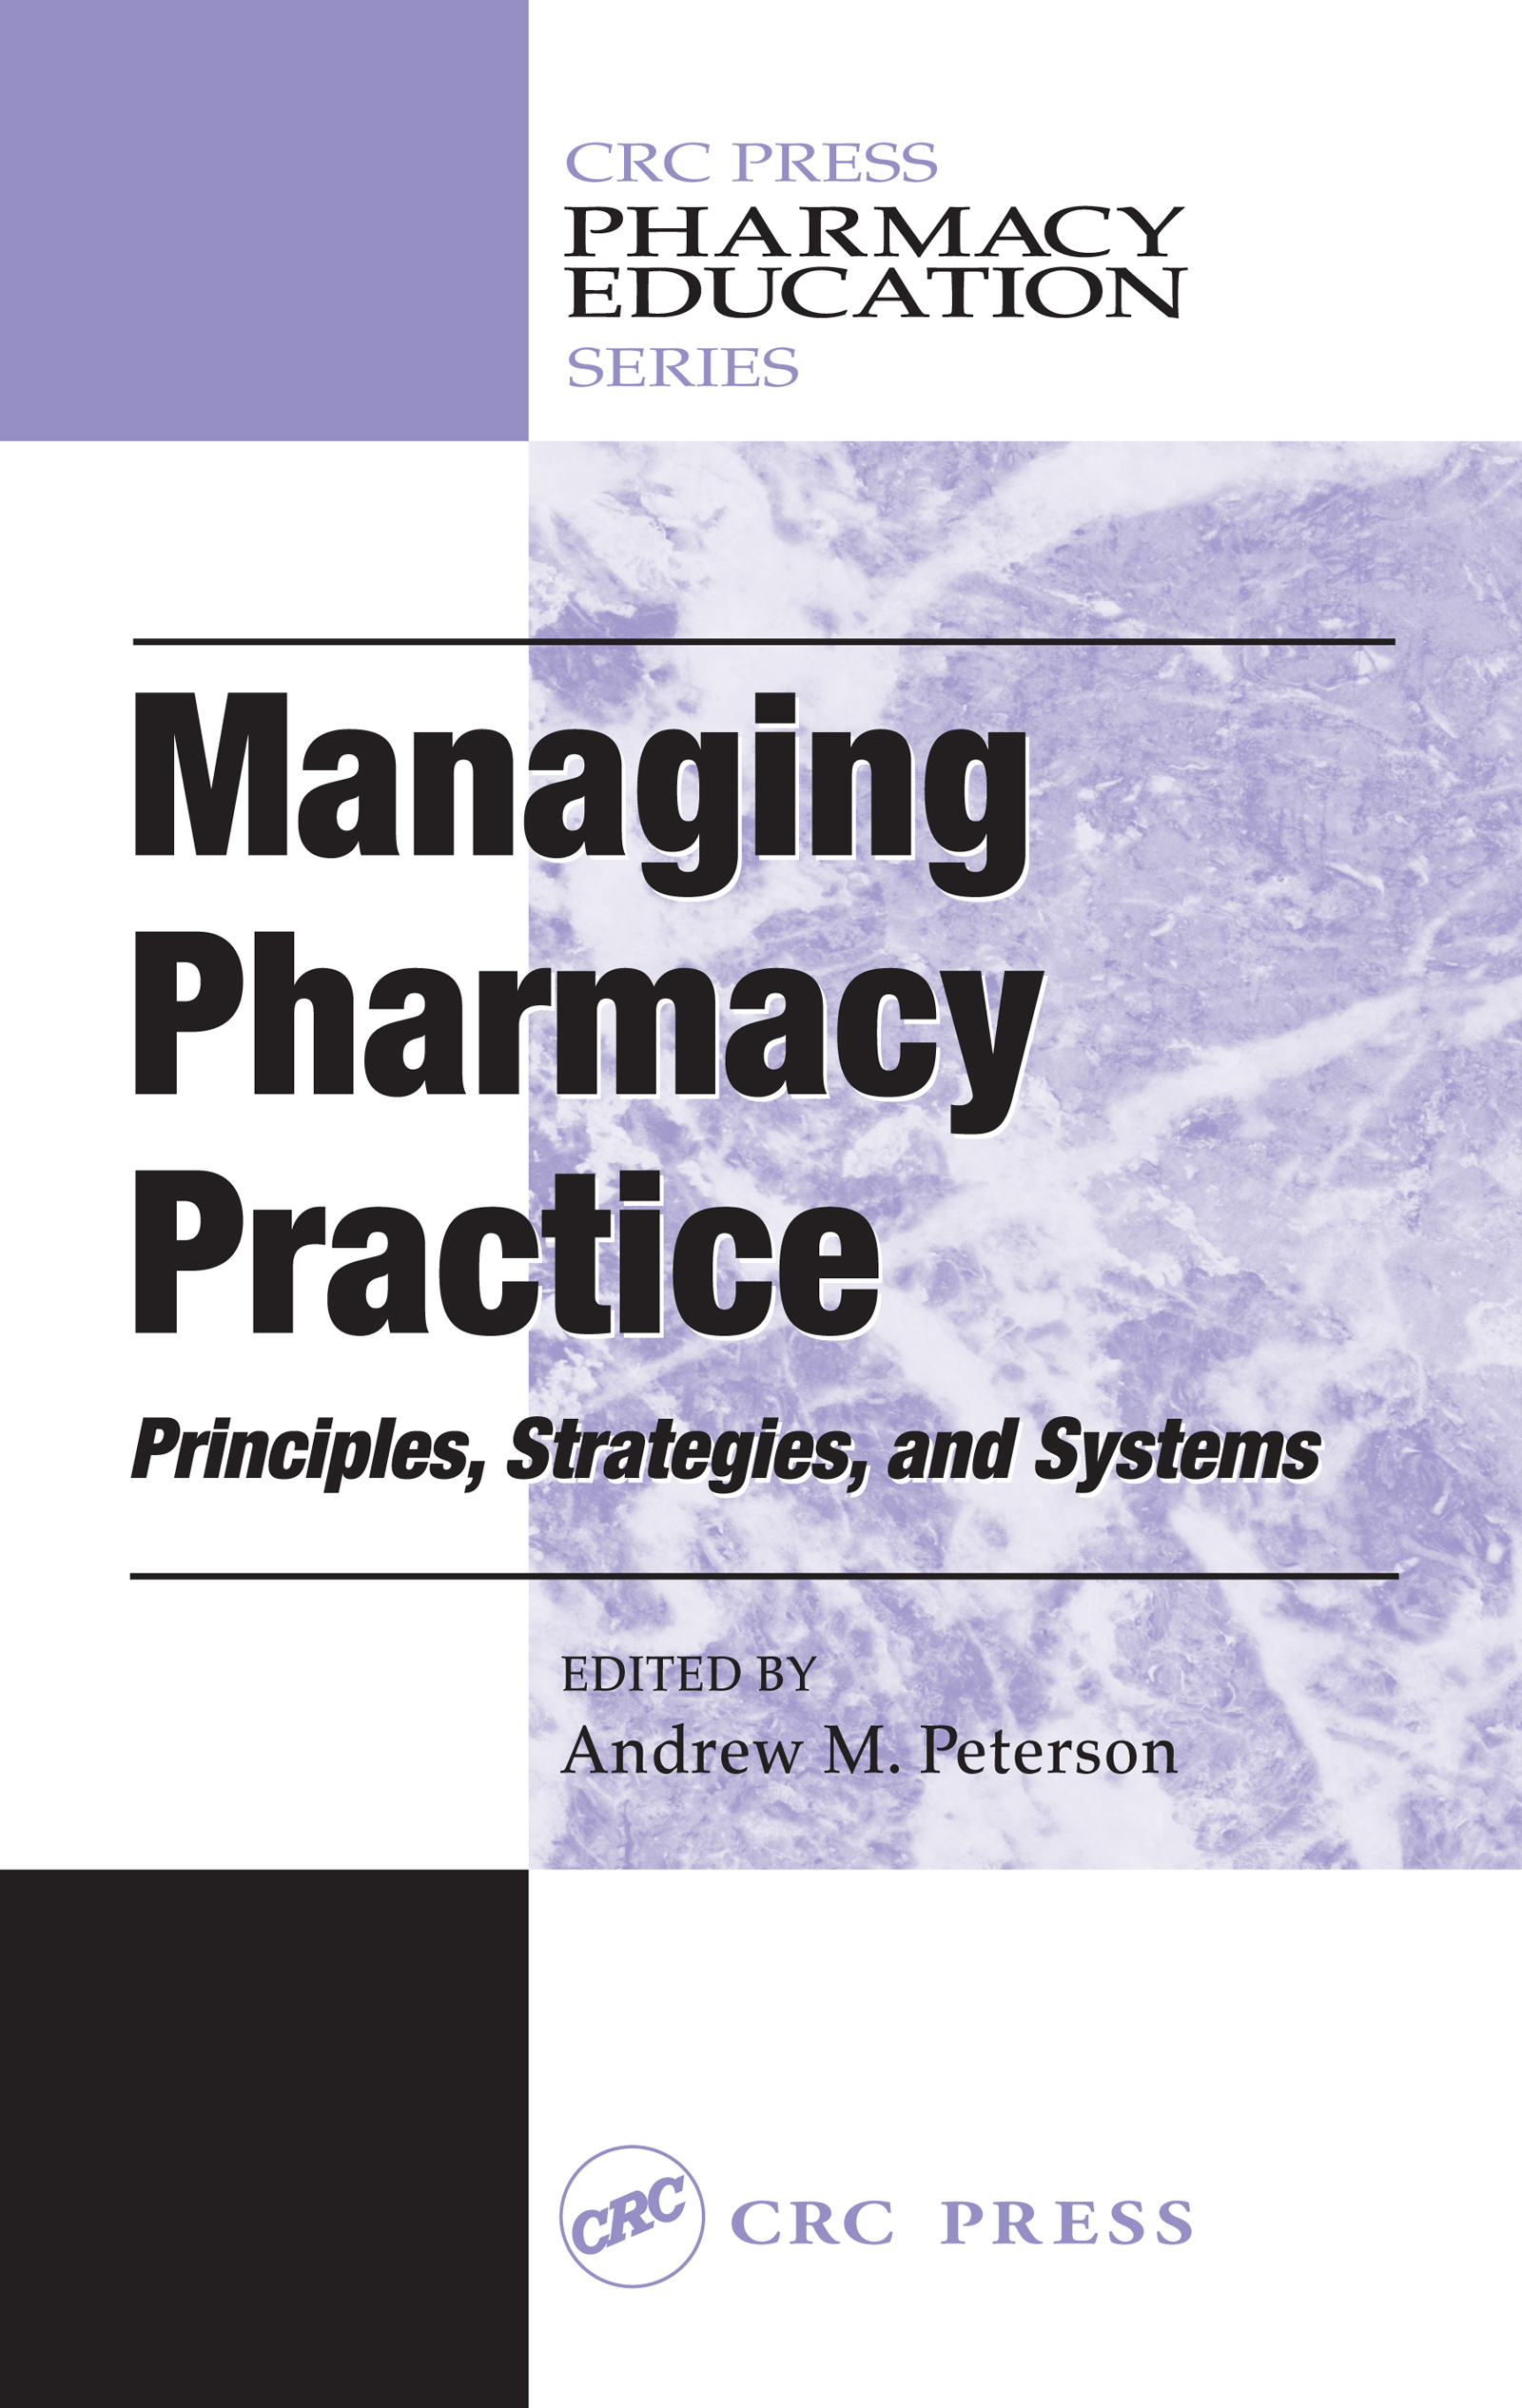 Download Ebook Managing Pharmacy Practice by Andrew M. Peterson Pdf